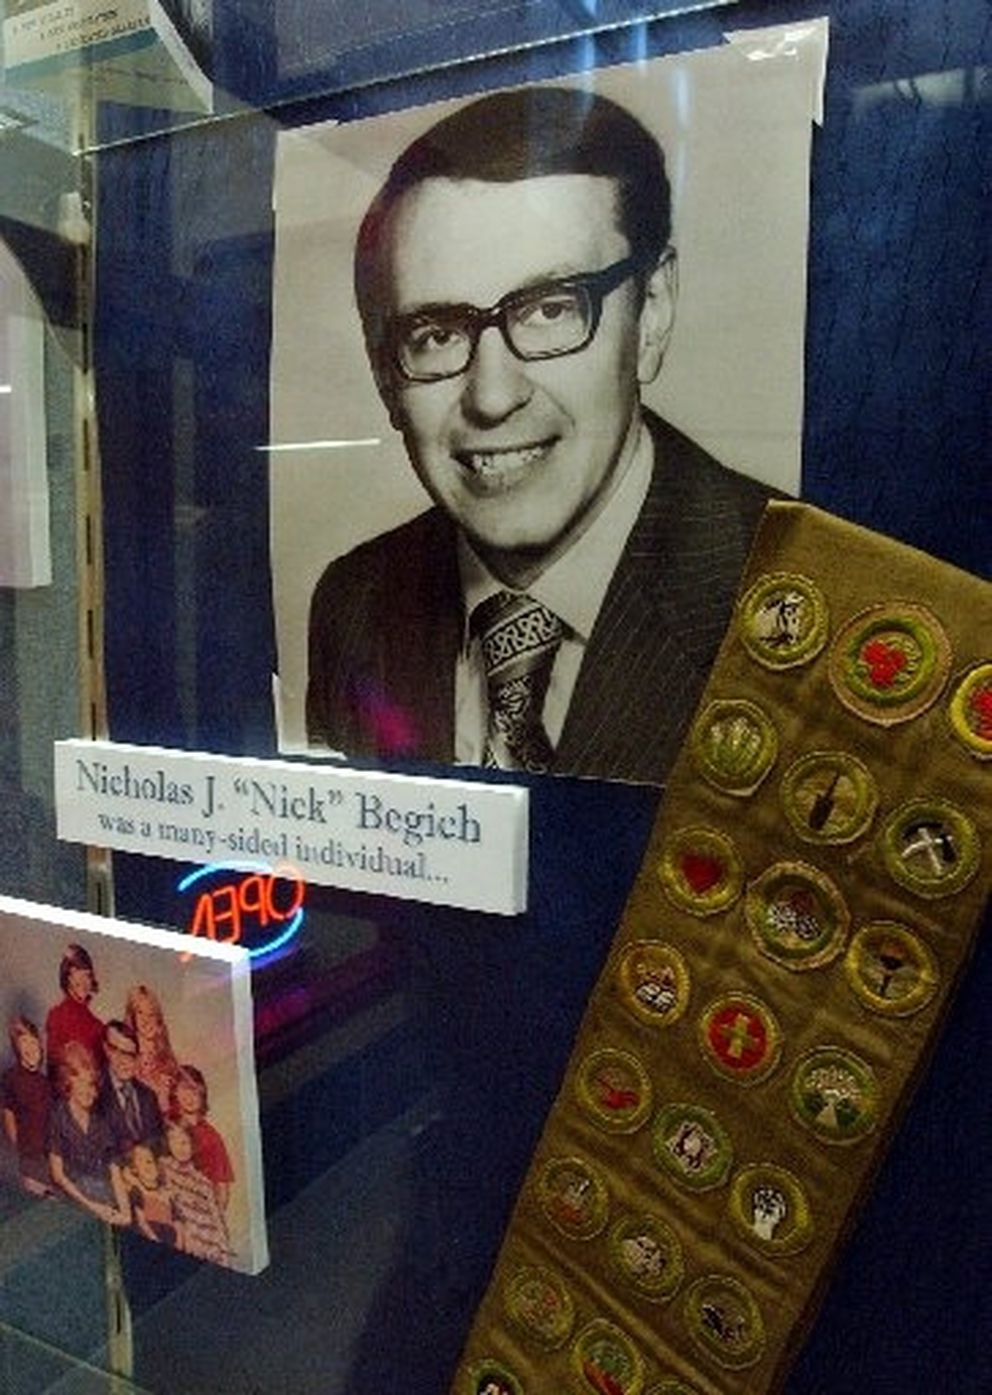 A display case at Begich Middle School in Anchorage the late congressman Nick Begich, father of former Sen. Mark Begich.